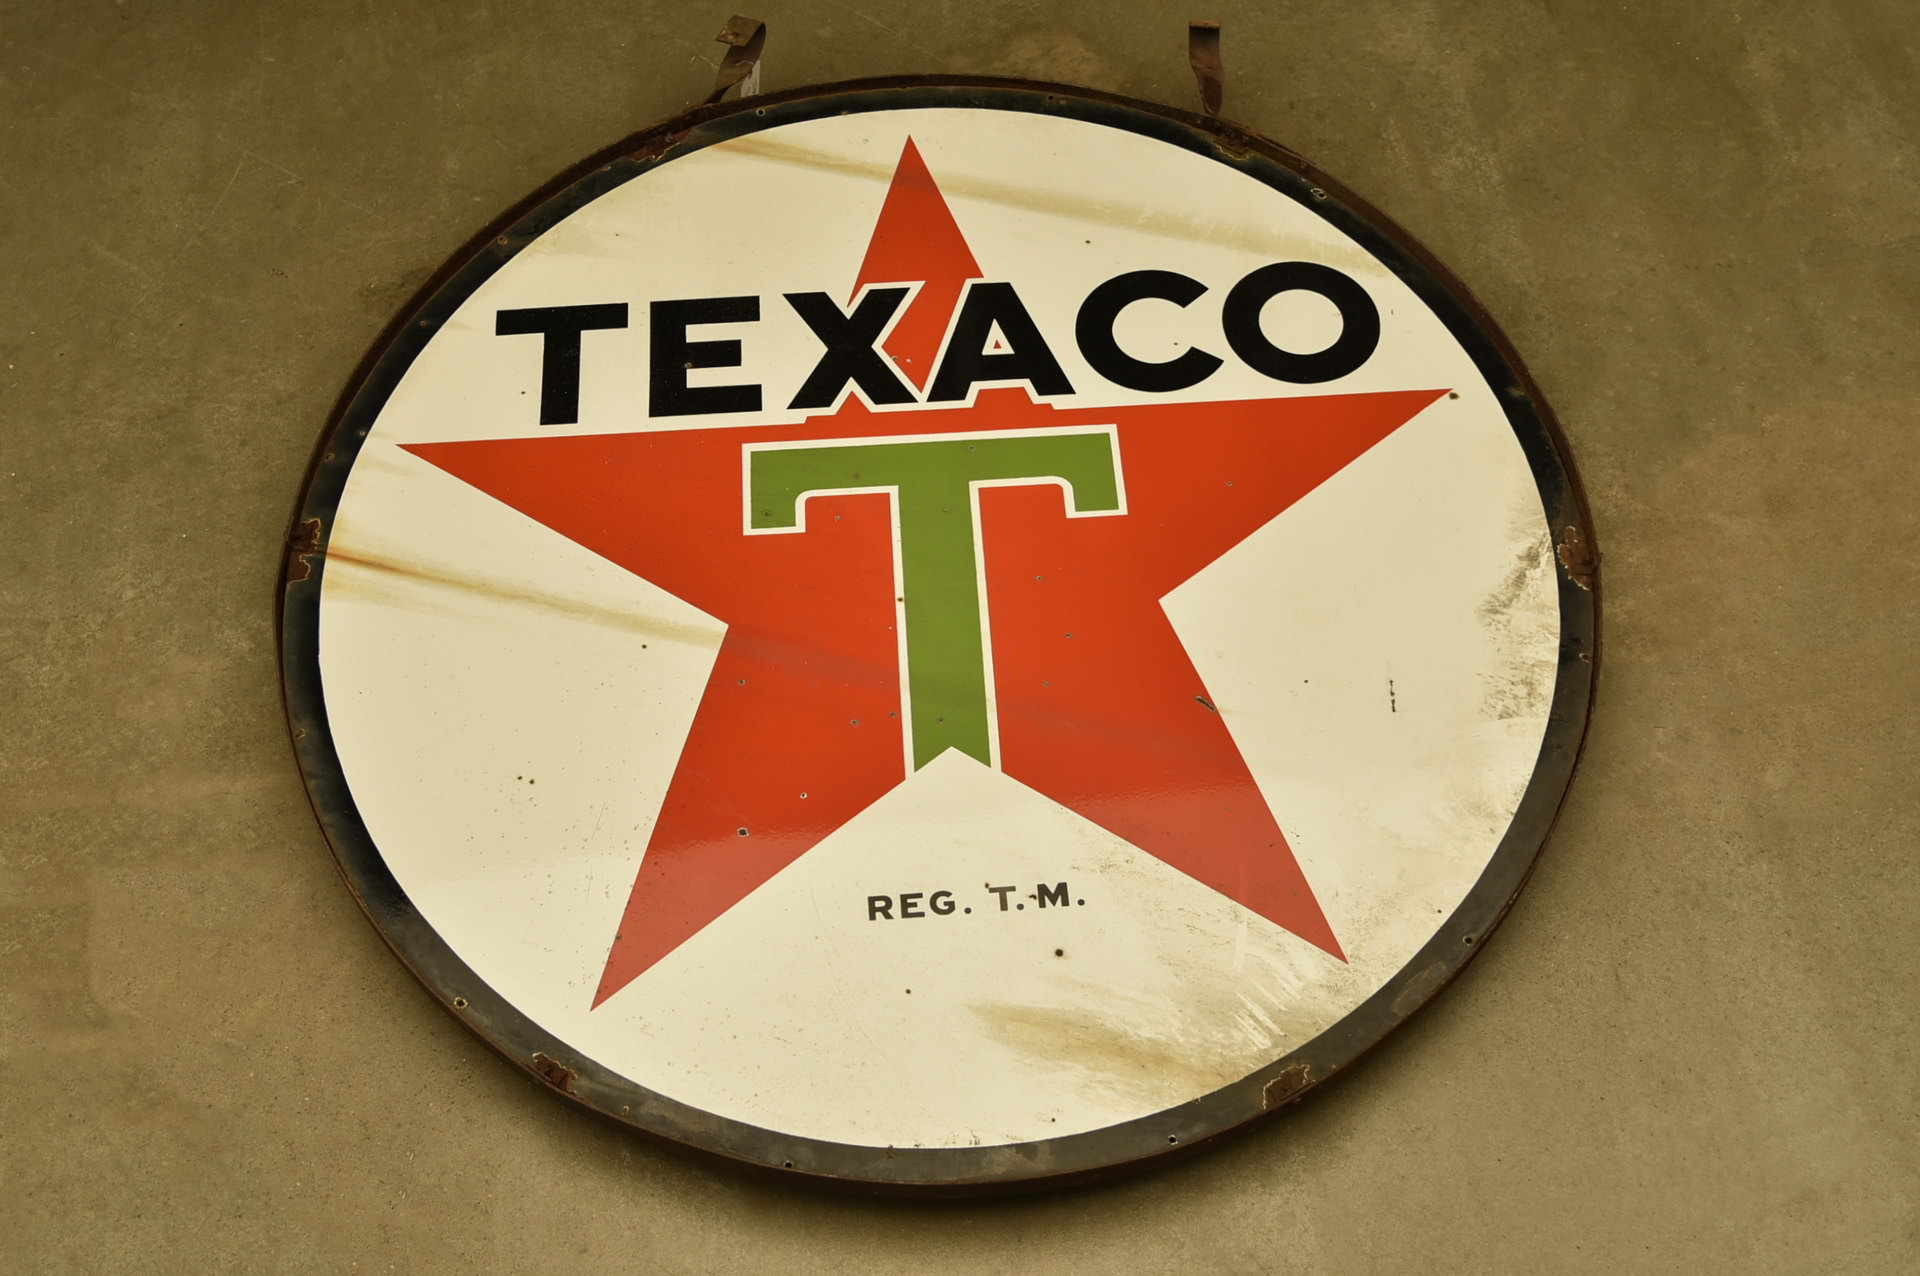 6' TEXACO DSP Porcelain Gas Station Sign in Hanging Frame